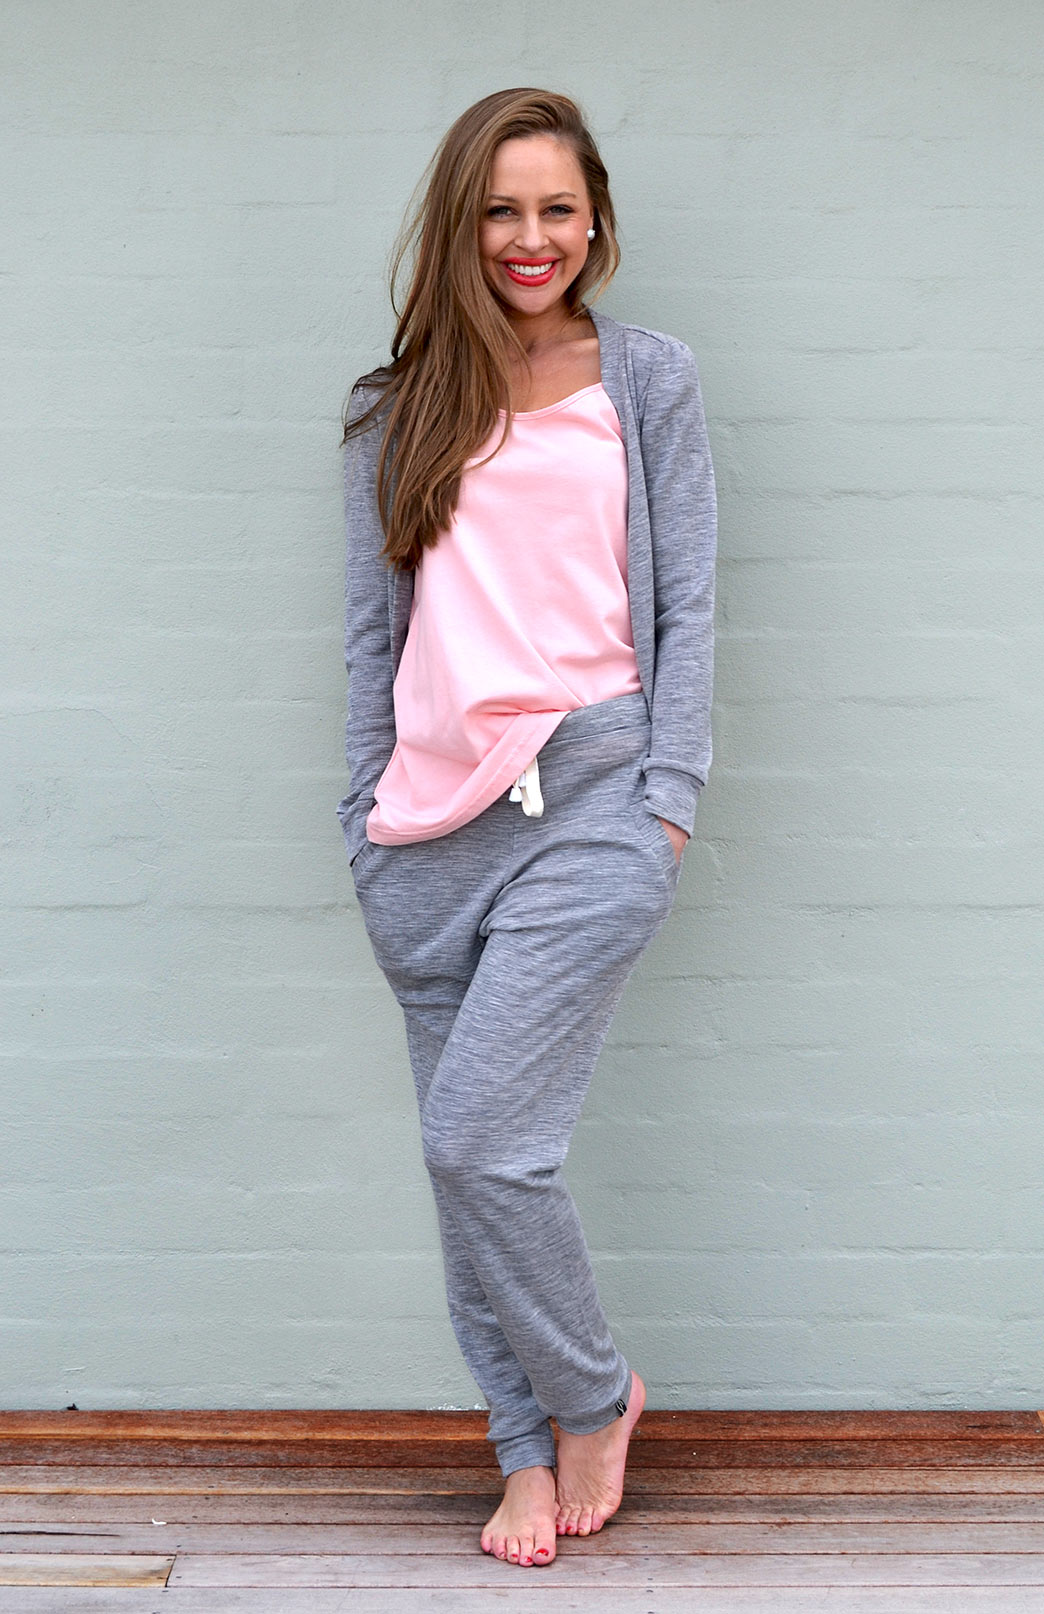 Lounge Pants - Women's Light Grey Jogger Pants with pockets and ties - Smitten Merino Tasmania Australia